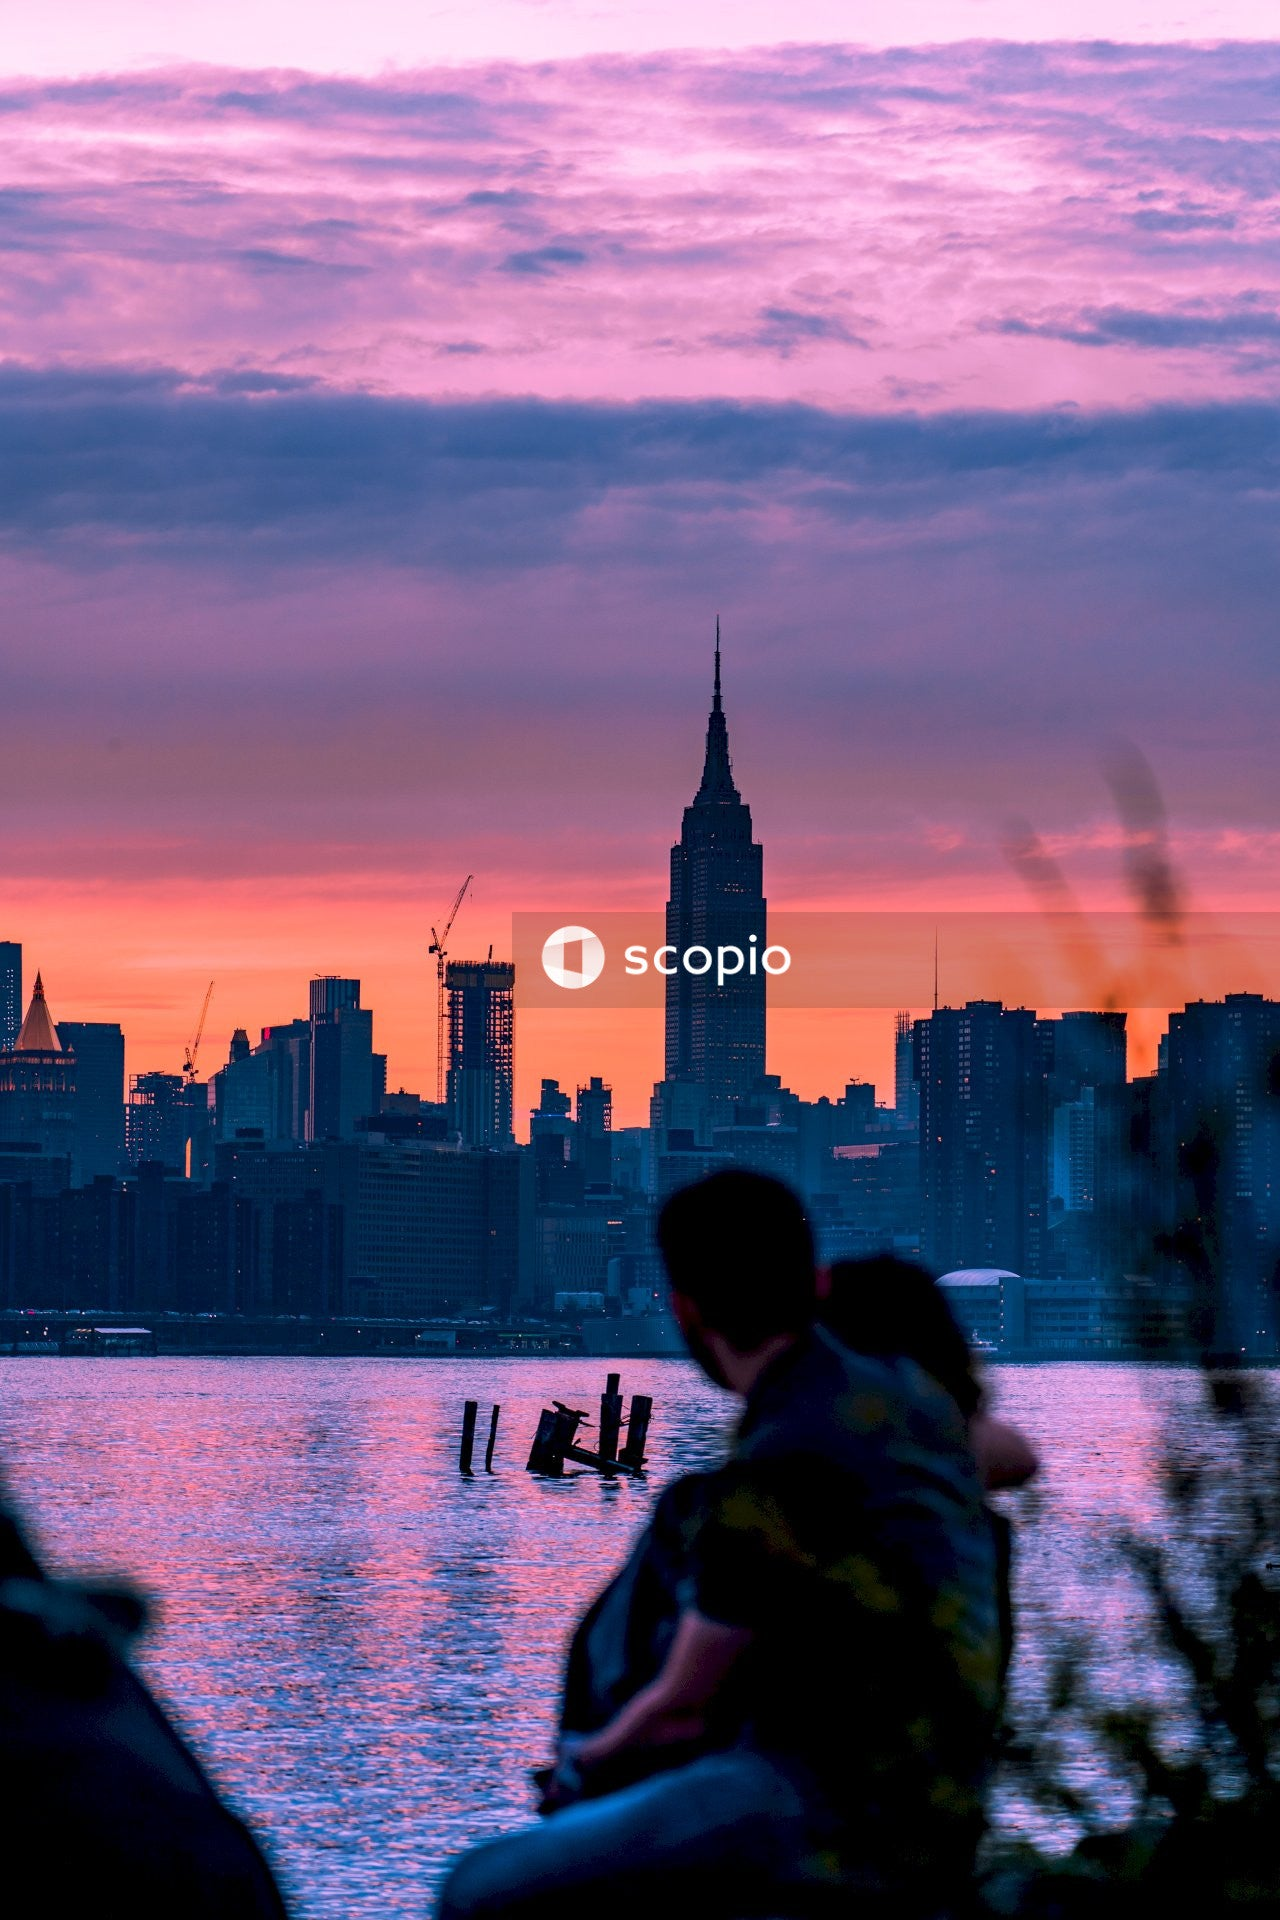 Man and woman sitting on bench looking at the city skyline